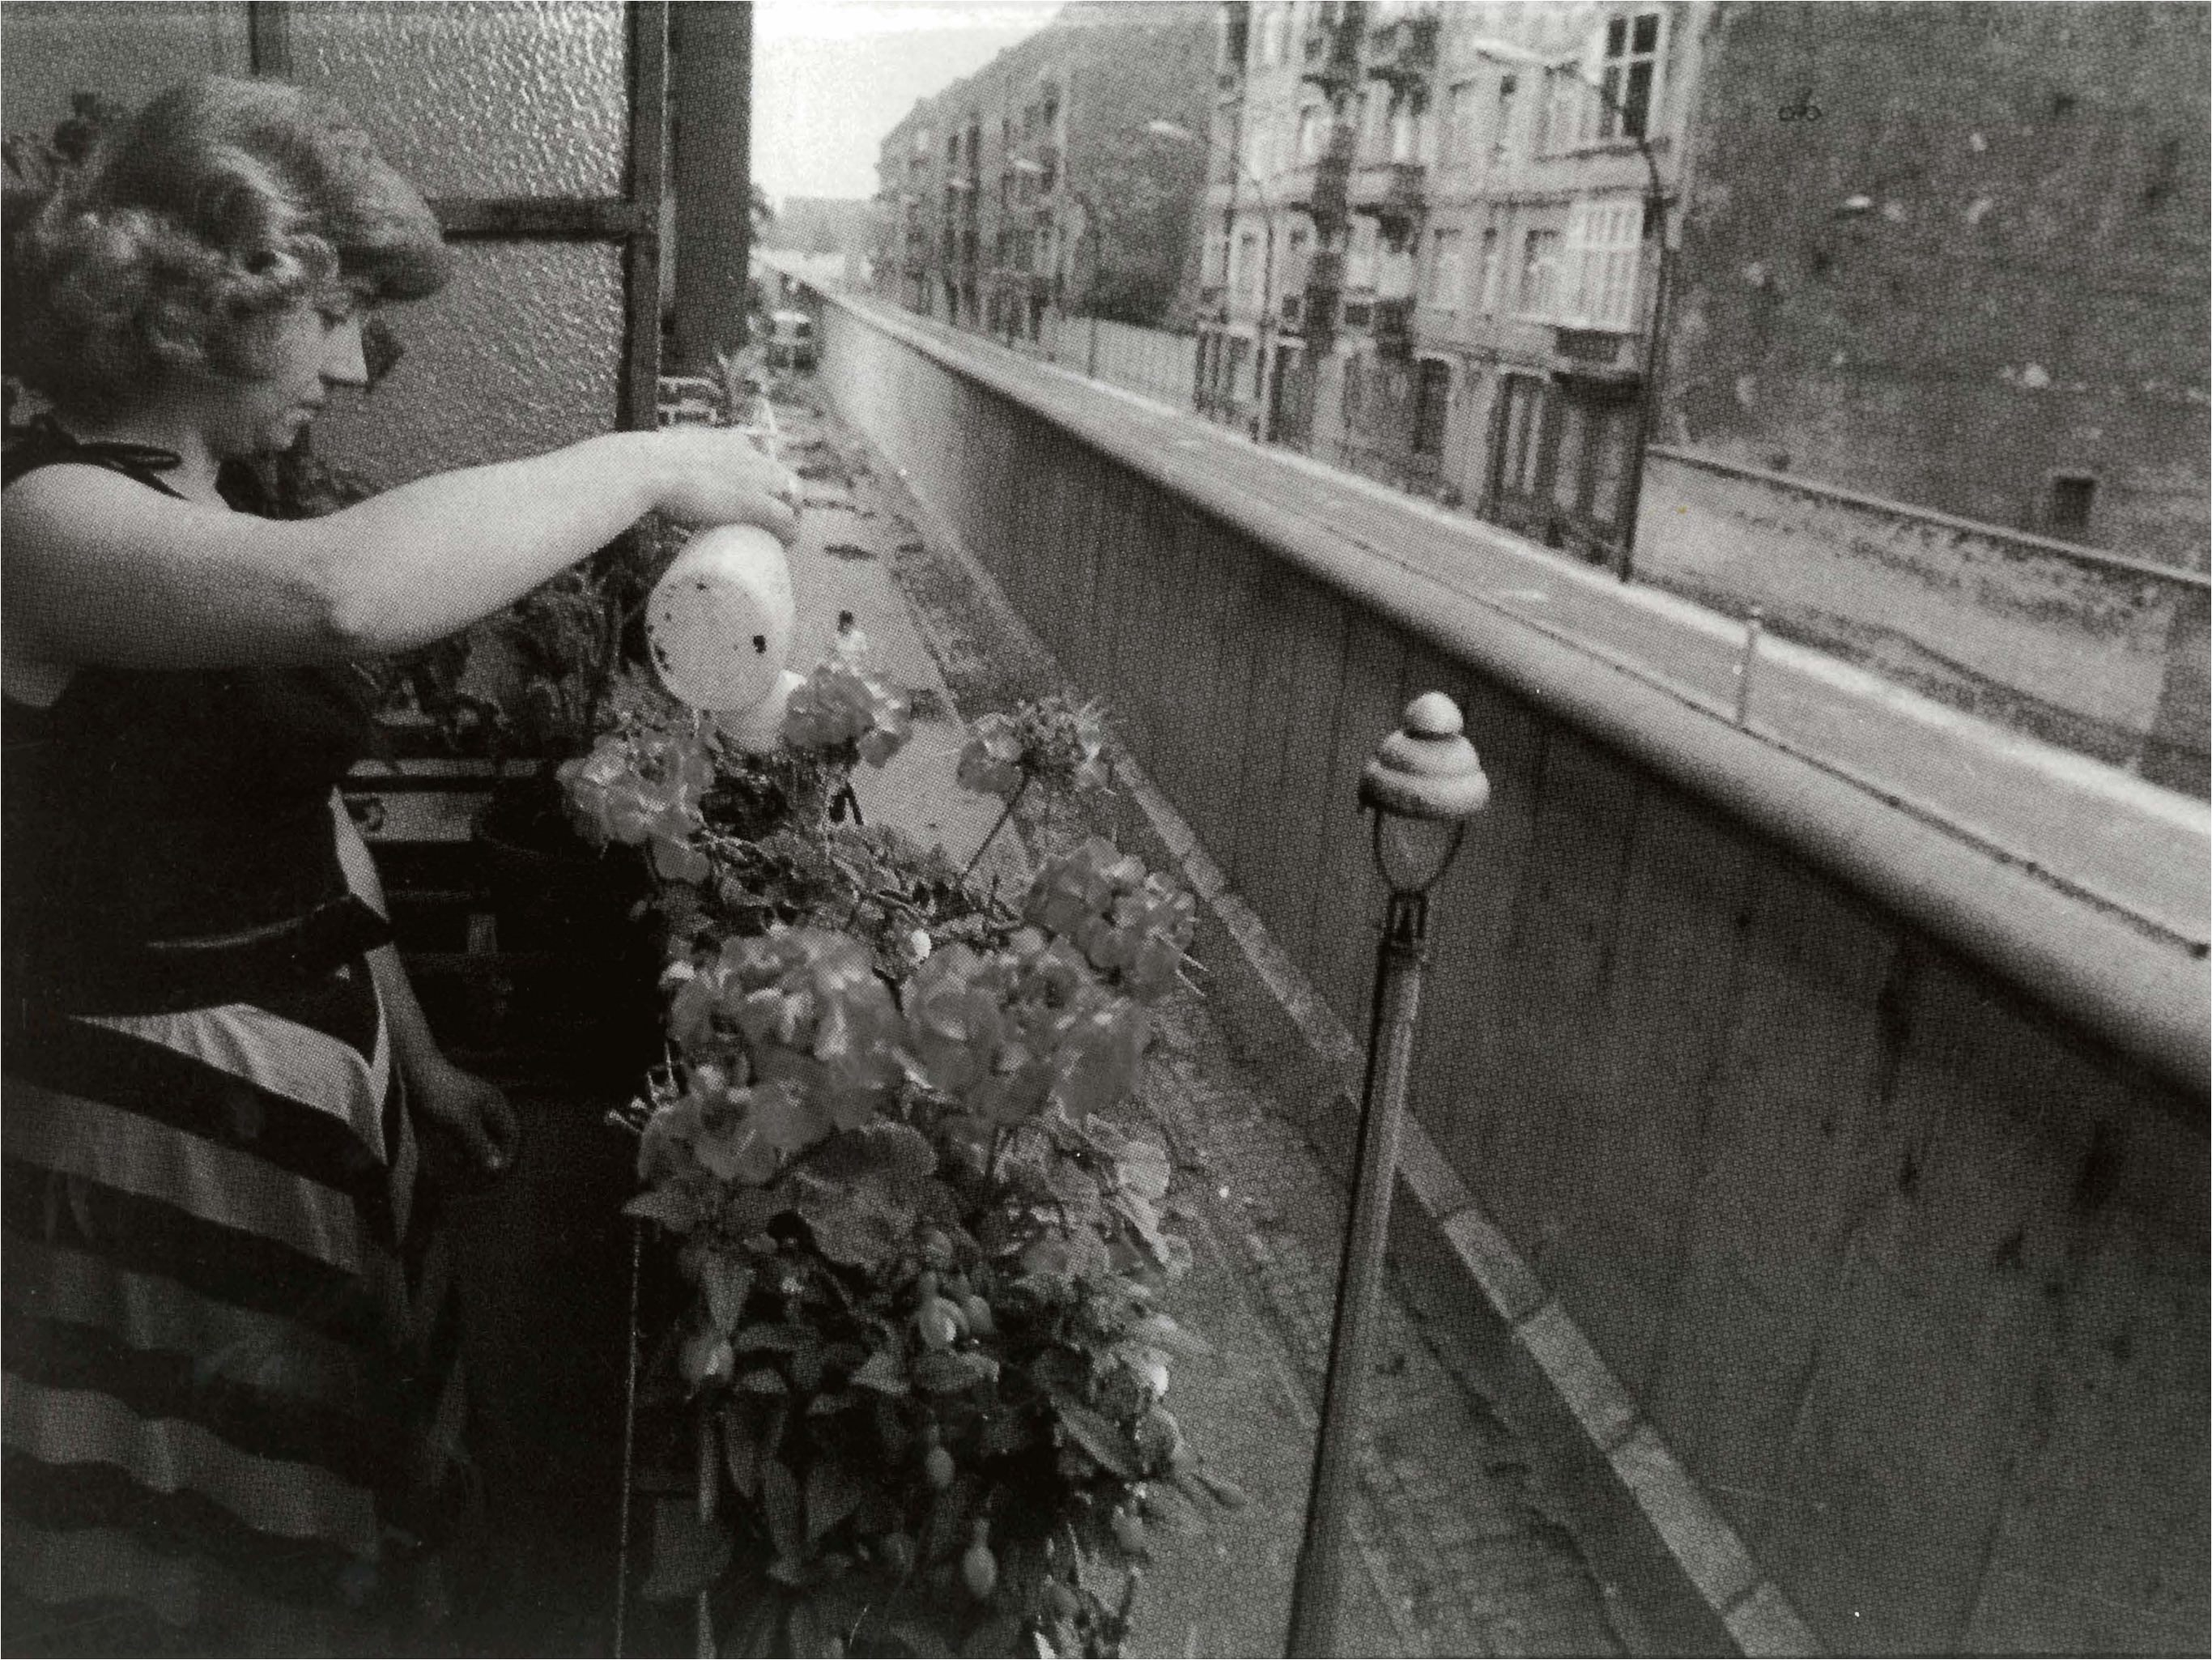 West Berlin woman waters her plants in an apartment at Wall's edge.